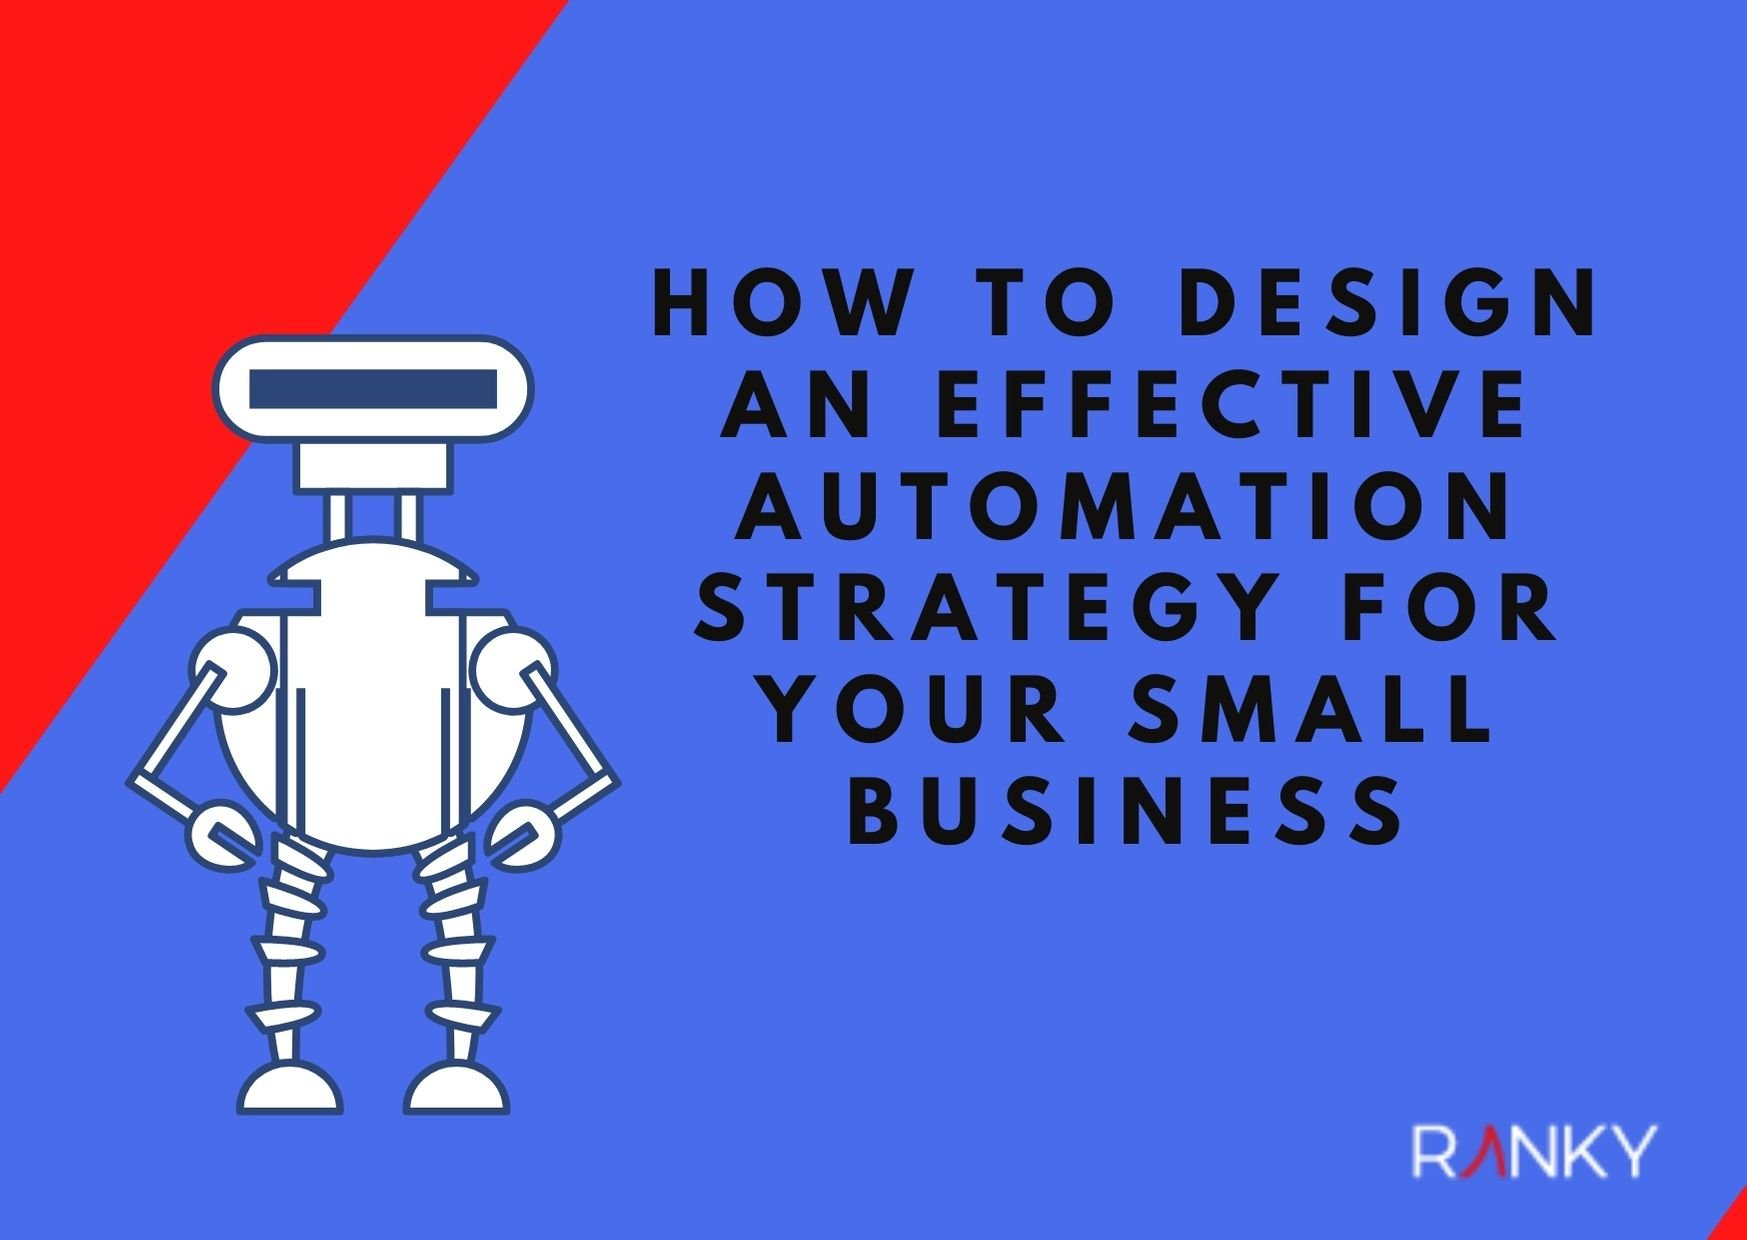 How to Design an Effective Automation Strategy for your Small Business